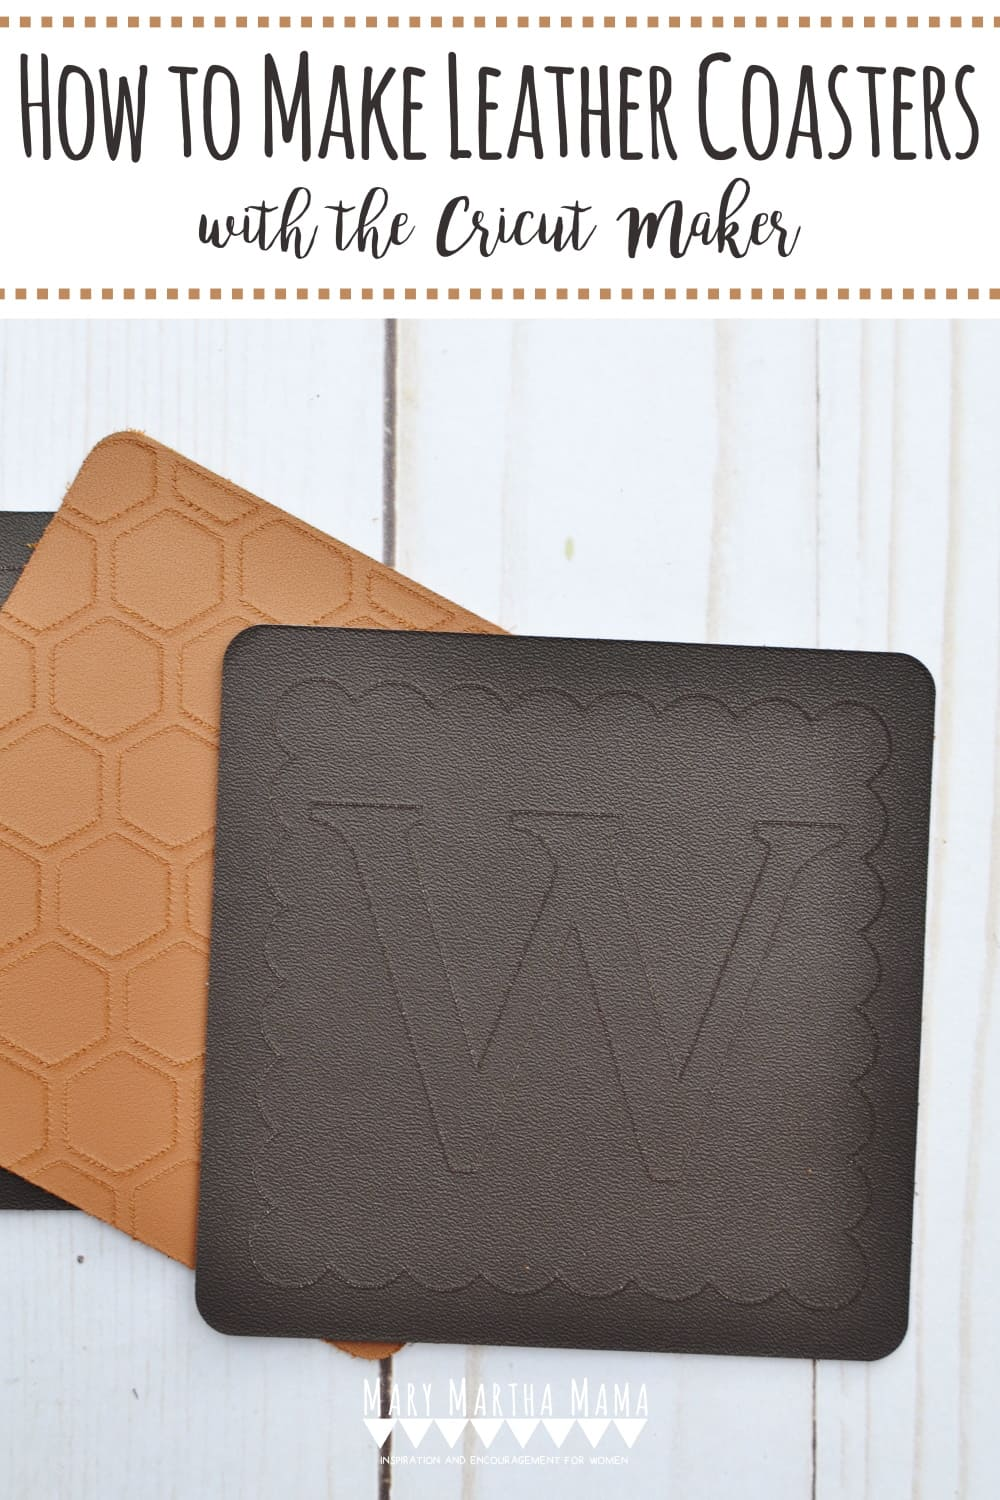 Learn how to make leather coasters with the Cricut Maker. In this tutorial I show how to make a design in Design Space and create personalized coasters.